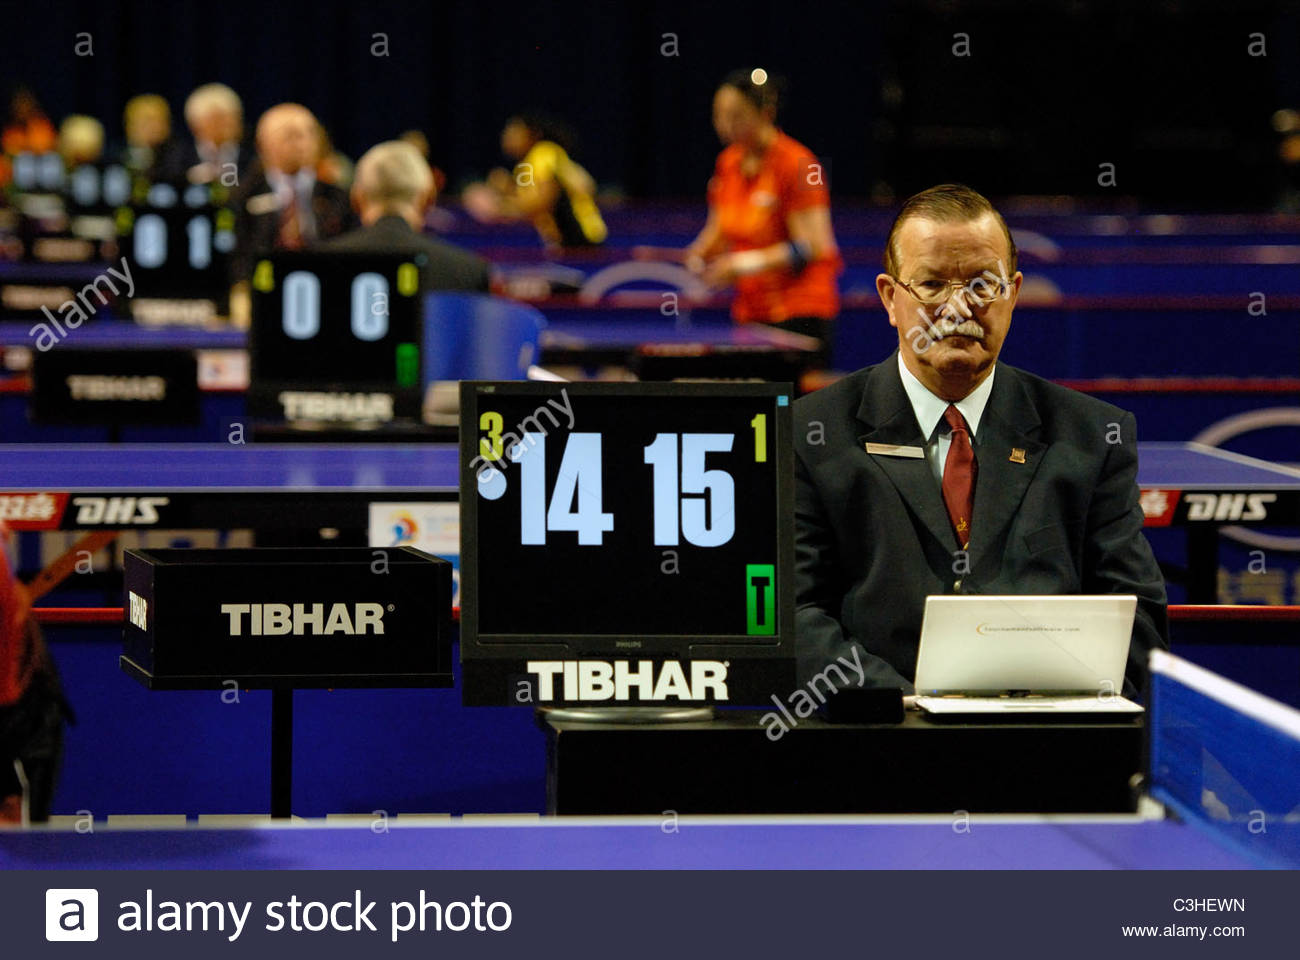 Rotterdam The Netherlands 10-5-2011 World Cup Table Tennis. Umpire - Stock Image